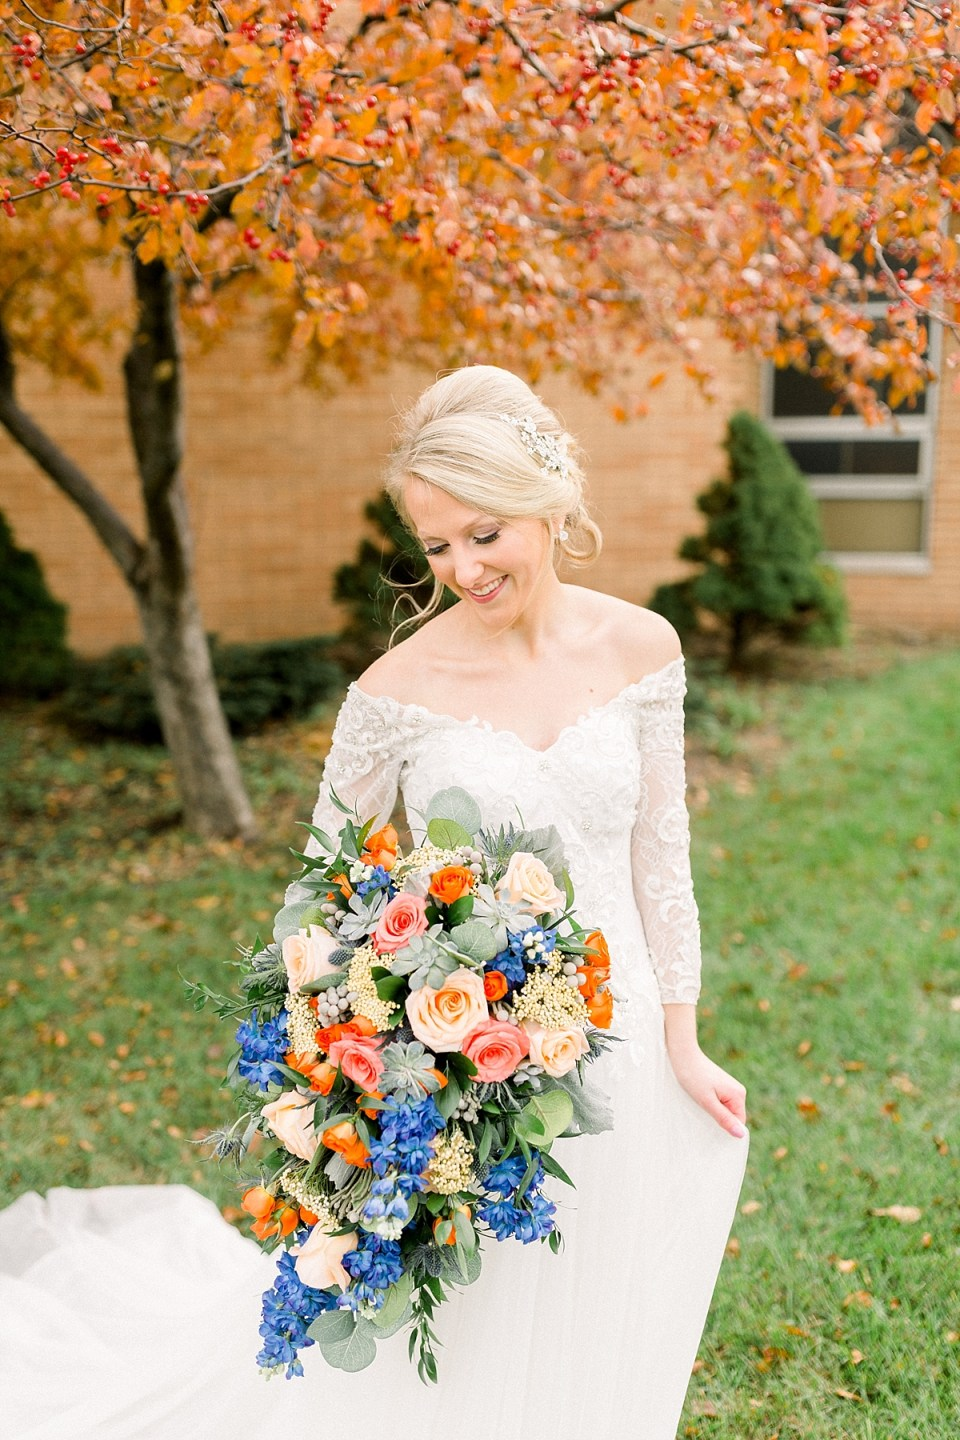 Arielle Peters Photography | Bride smiling with her bouquet outside on fall wedding day.